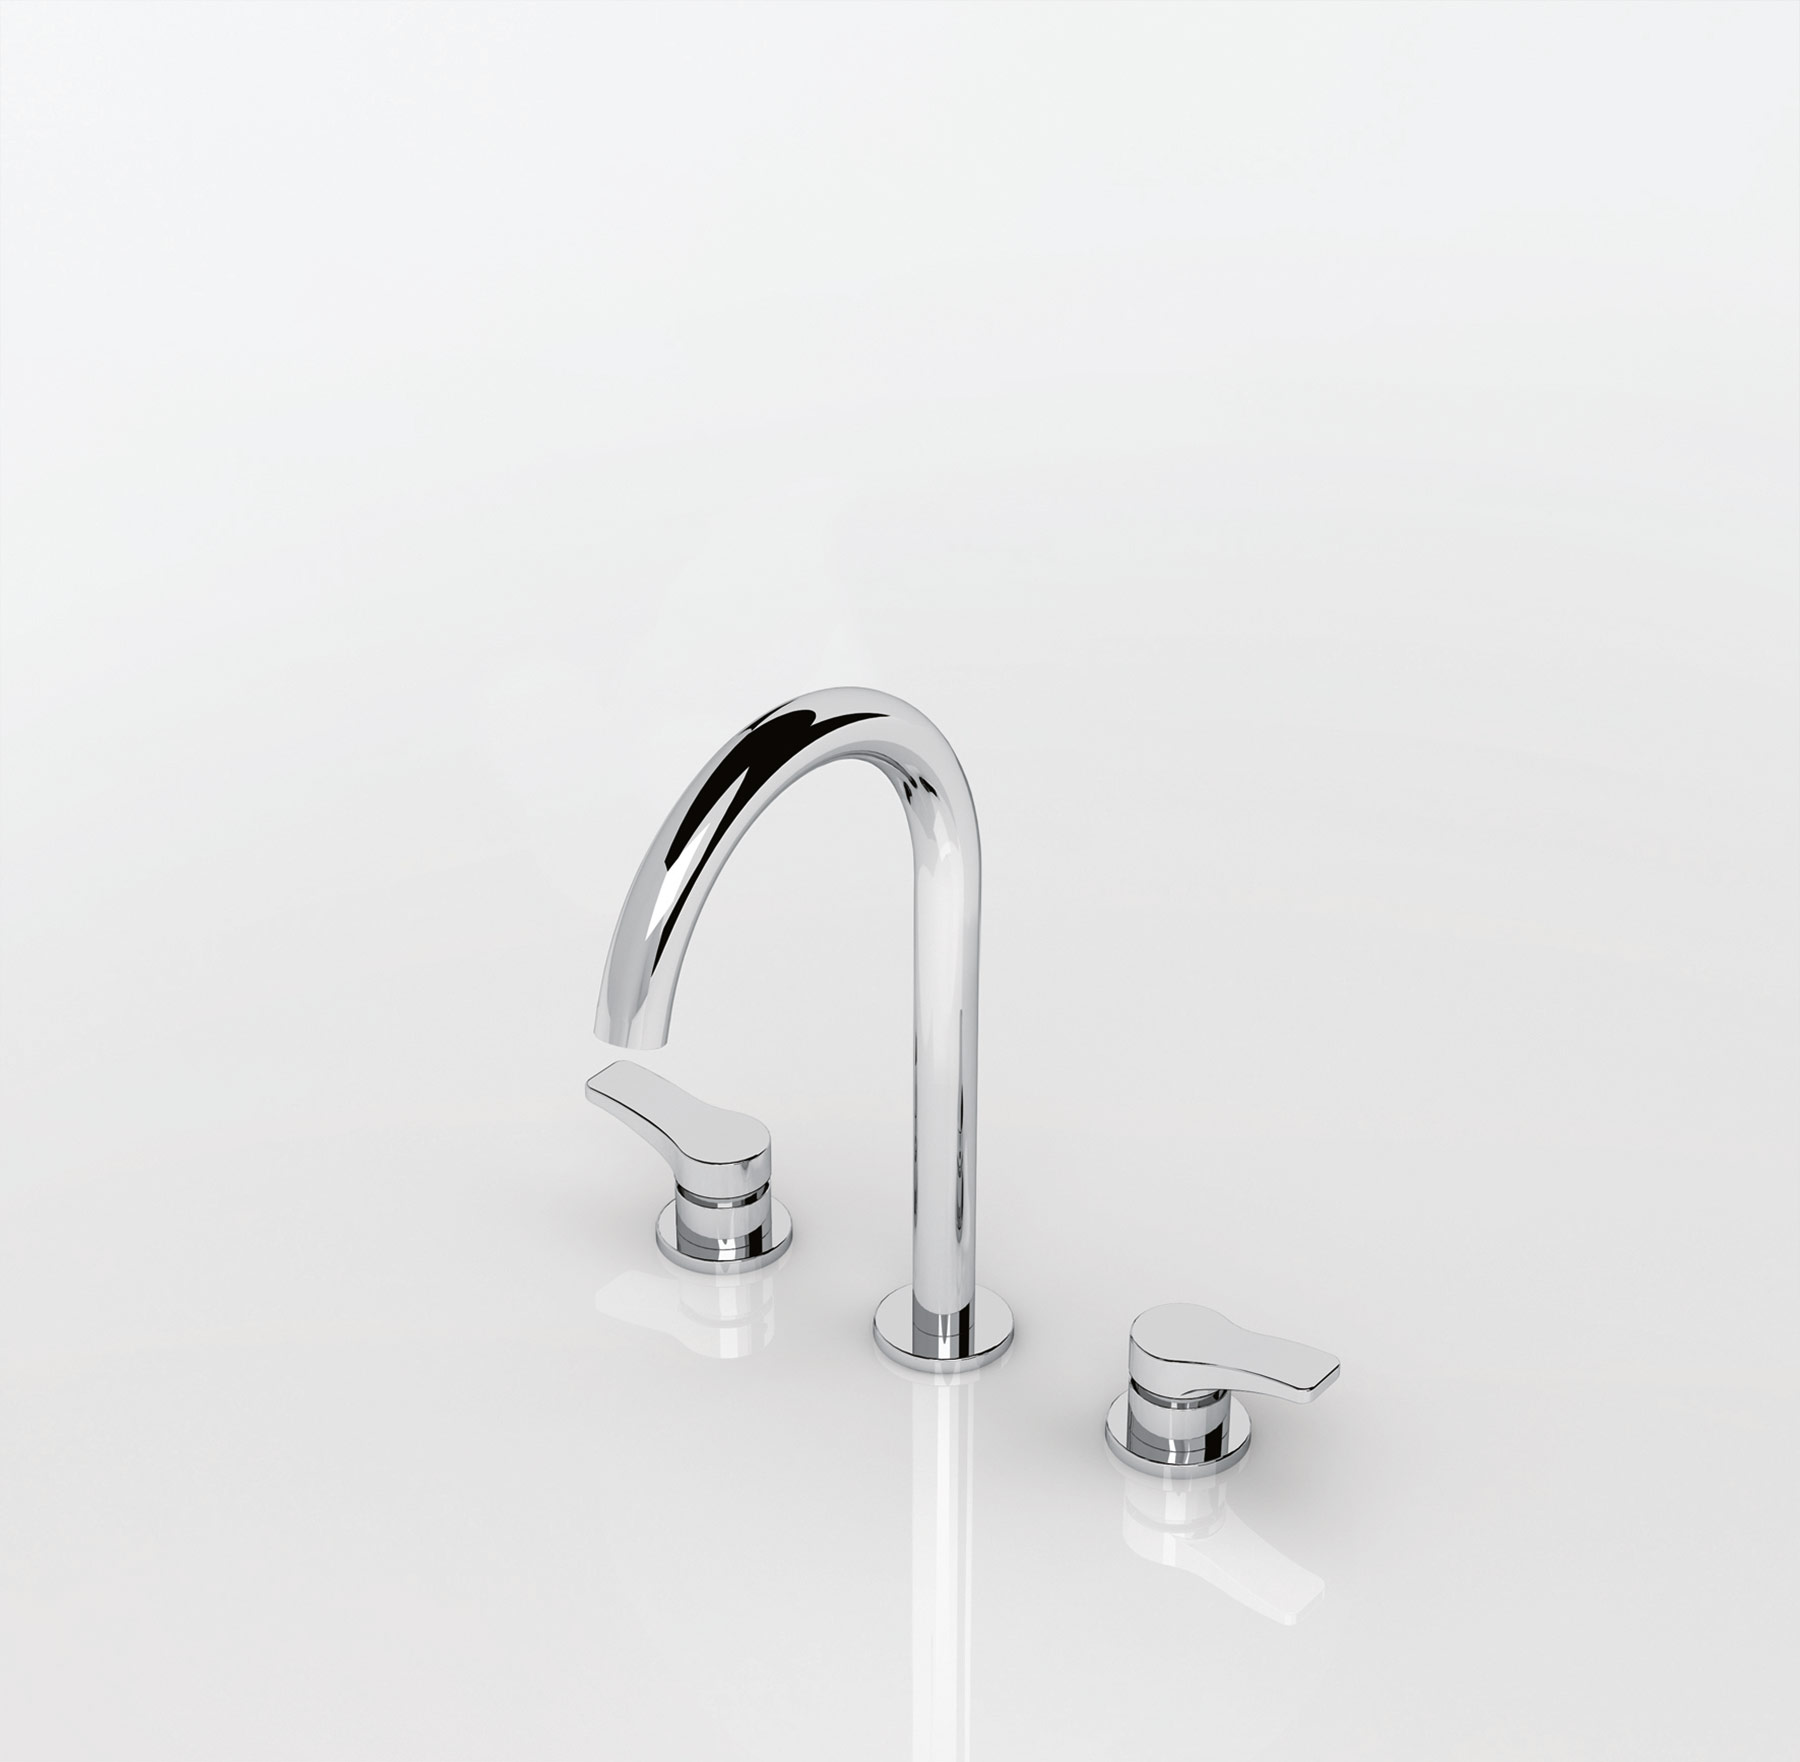 Transitional Lissoni Deck Mount Faucet